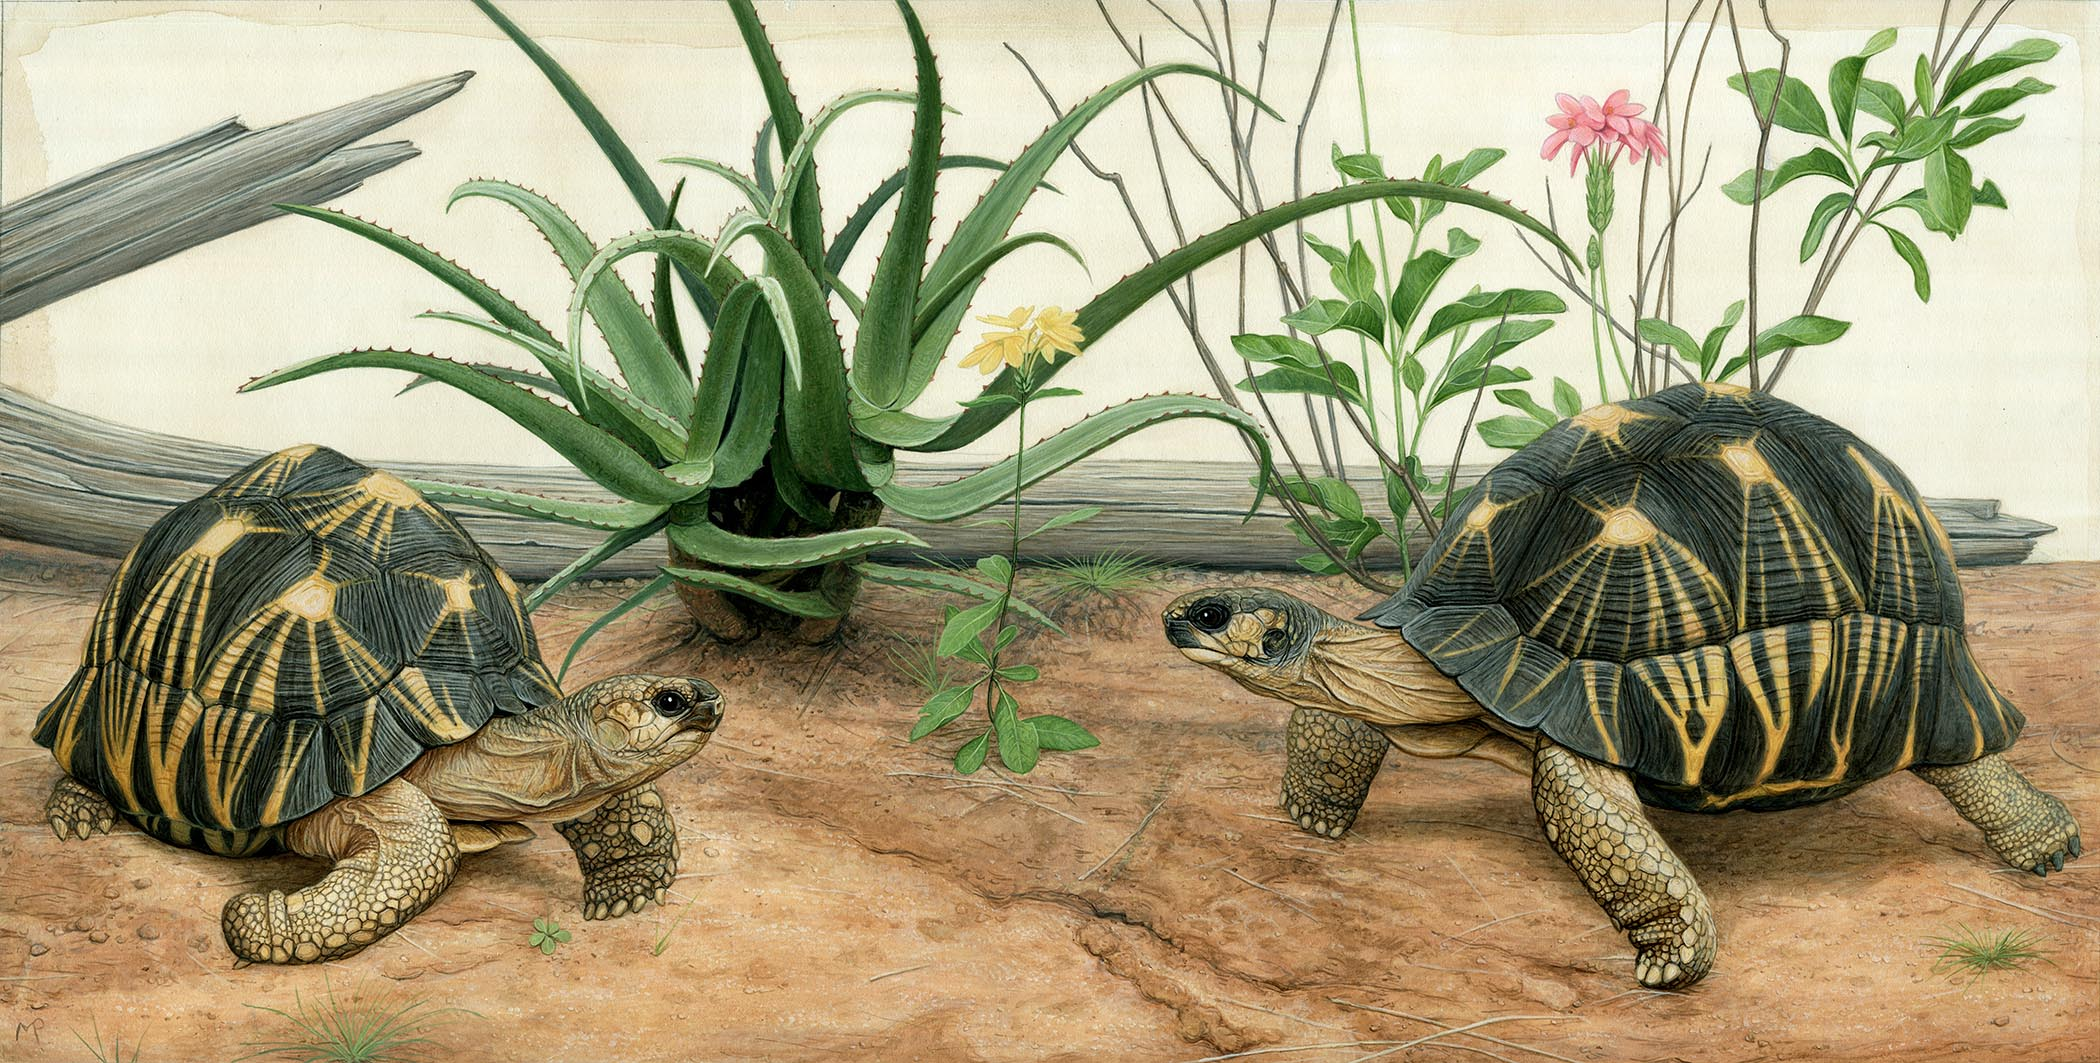 Link to print below.   https://www.etsy.com/listing/719419013/radiated-tortoises-20-x-10-inch-limited?ref=shop_home_active_1&crt=1   I now have a limited edition print of my new radiated tortoise painting available. There are only 100 of these prints available, each one is numbered and signed by me. ALL PROCEEDS from this print will be donated to the Turtle Survival Alliance (TSA). If any of you are willing to share or re-post this I would greatly appreciate it! There is a link to my Etsy where you can purchase the print below.   Earlier this year I had the opportunity to travel to Madagascar and see these amazing animals in the wild. This painting is inspired by the tortoises and plants I saw while there. I was able to visit TSA's Tortoise Conservation Center and also participate with Josh Lucas on his radiated survey in the field. It was an incredible experience being in the spiny forest and seeing these tortoises in their habitat.   The work that TSA and others are doing is so important to the survival of these critically endangered animals in the wild. In the 90's there was an estimated 12 million radiated tortoises in the wild. In 2013 the number was estimated to only be 6 million. Today that number has been cut in half again and there are only 3 million radiated tortoises estimated in the wild. Just think what that number will be in a couple more years if nothing is done. Just last April a house was discovered in southern Madagascar with over 10,000 radiated tortoises that had illegally been taken from the wild. Six months later another house was discovered with 7,000 tortoises. The Turtle Survival Alliance along with other conservation organizations are working to help protect this species. Success depends on many things, one is building partnerships with local communities and being able to educate and foster an interest with them to protect the wildlife they live with.   All you have to do is buy a print to help contribute to this cause. PLEASE share this po